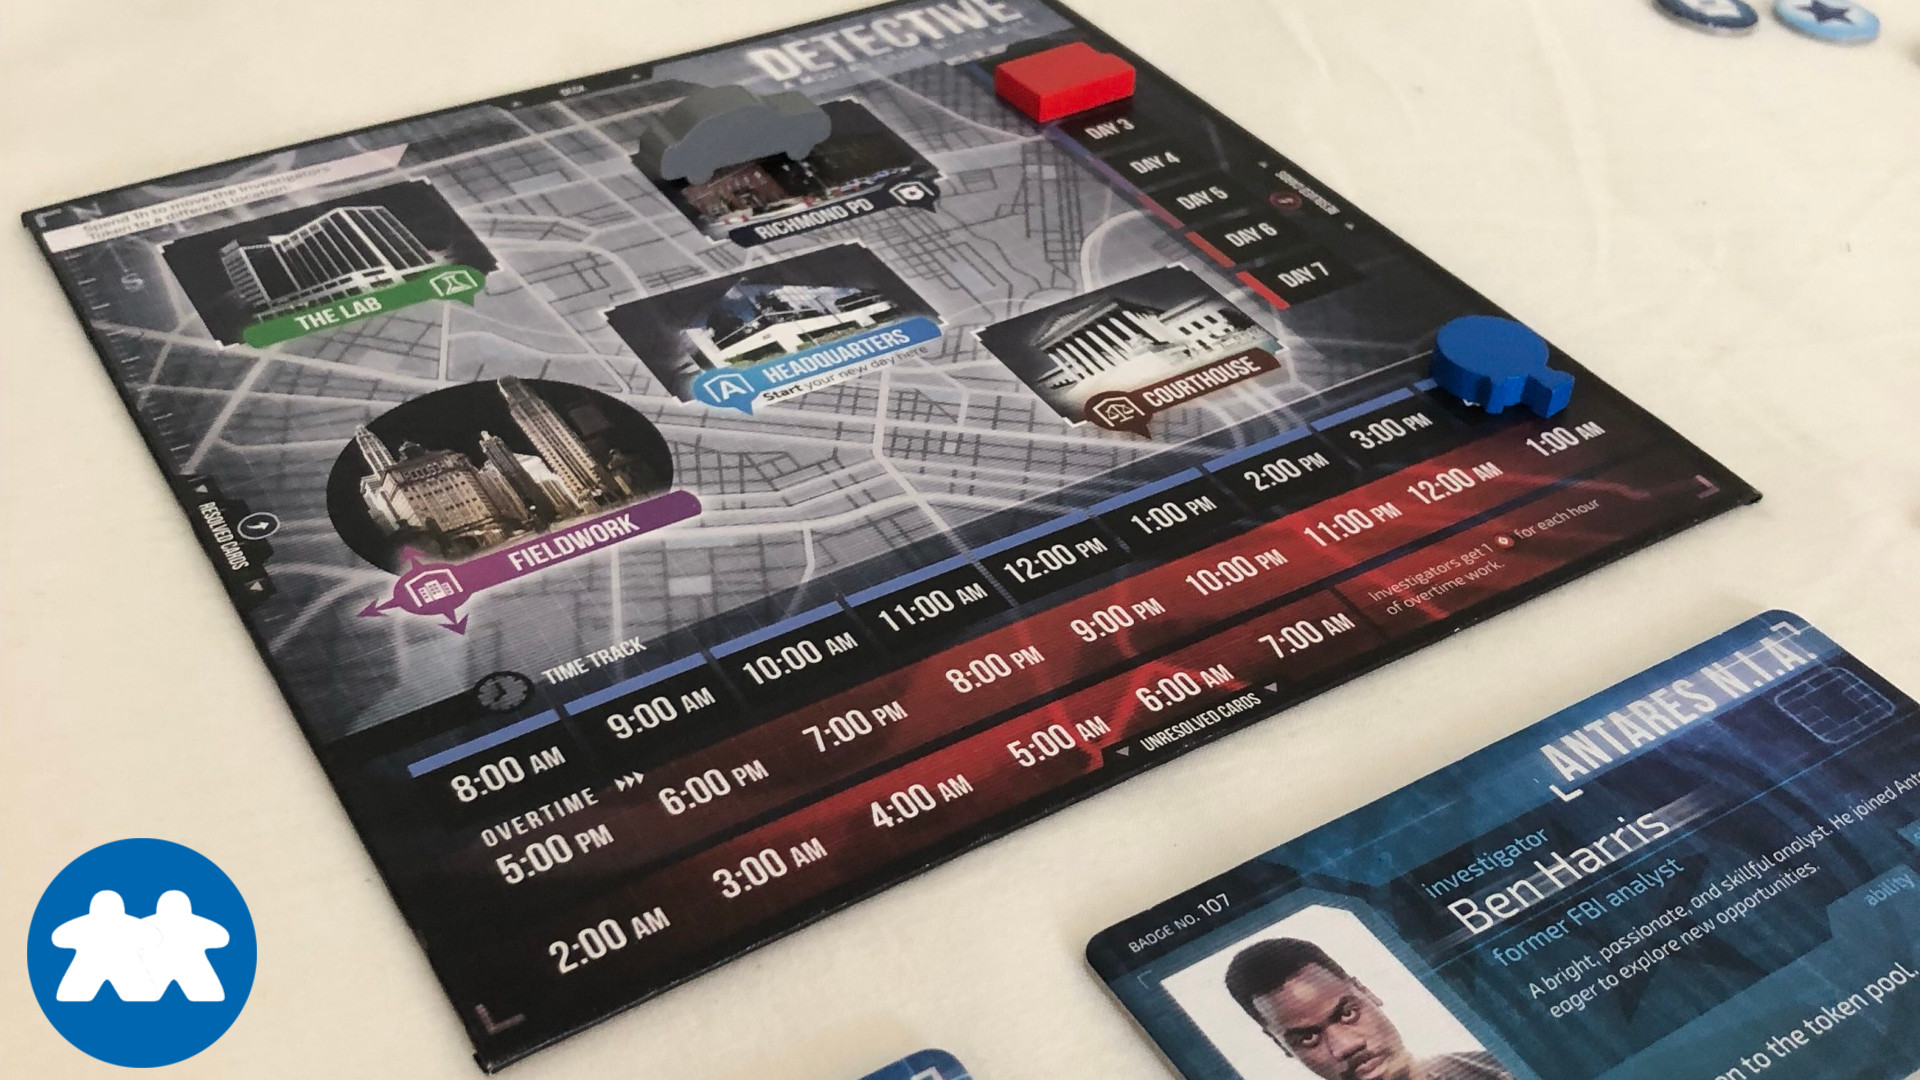 Board Meetings Review of Detective: A Modern Crime Board